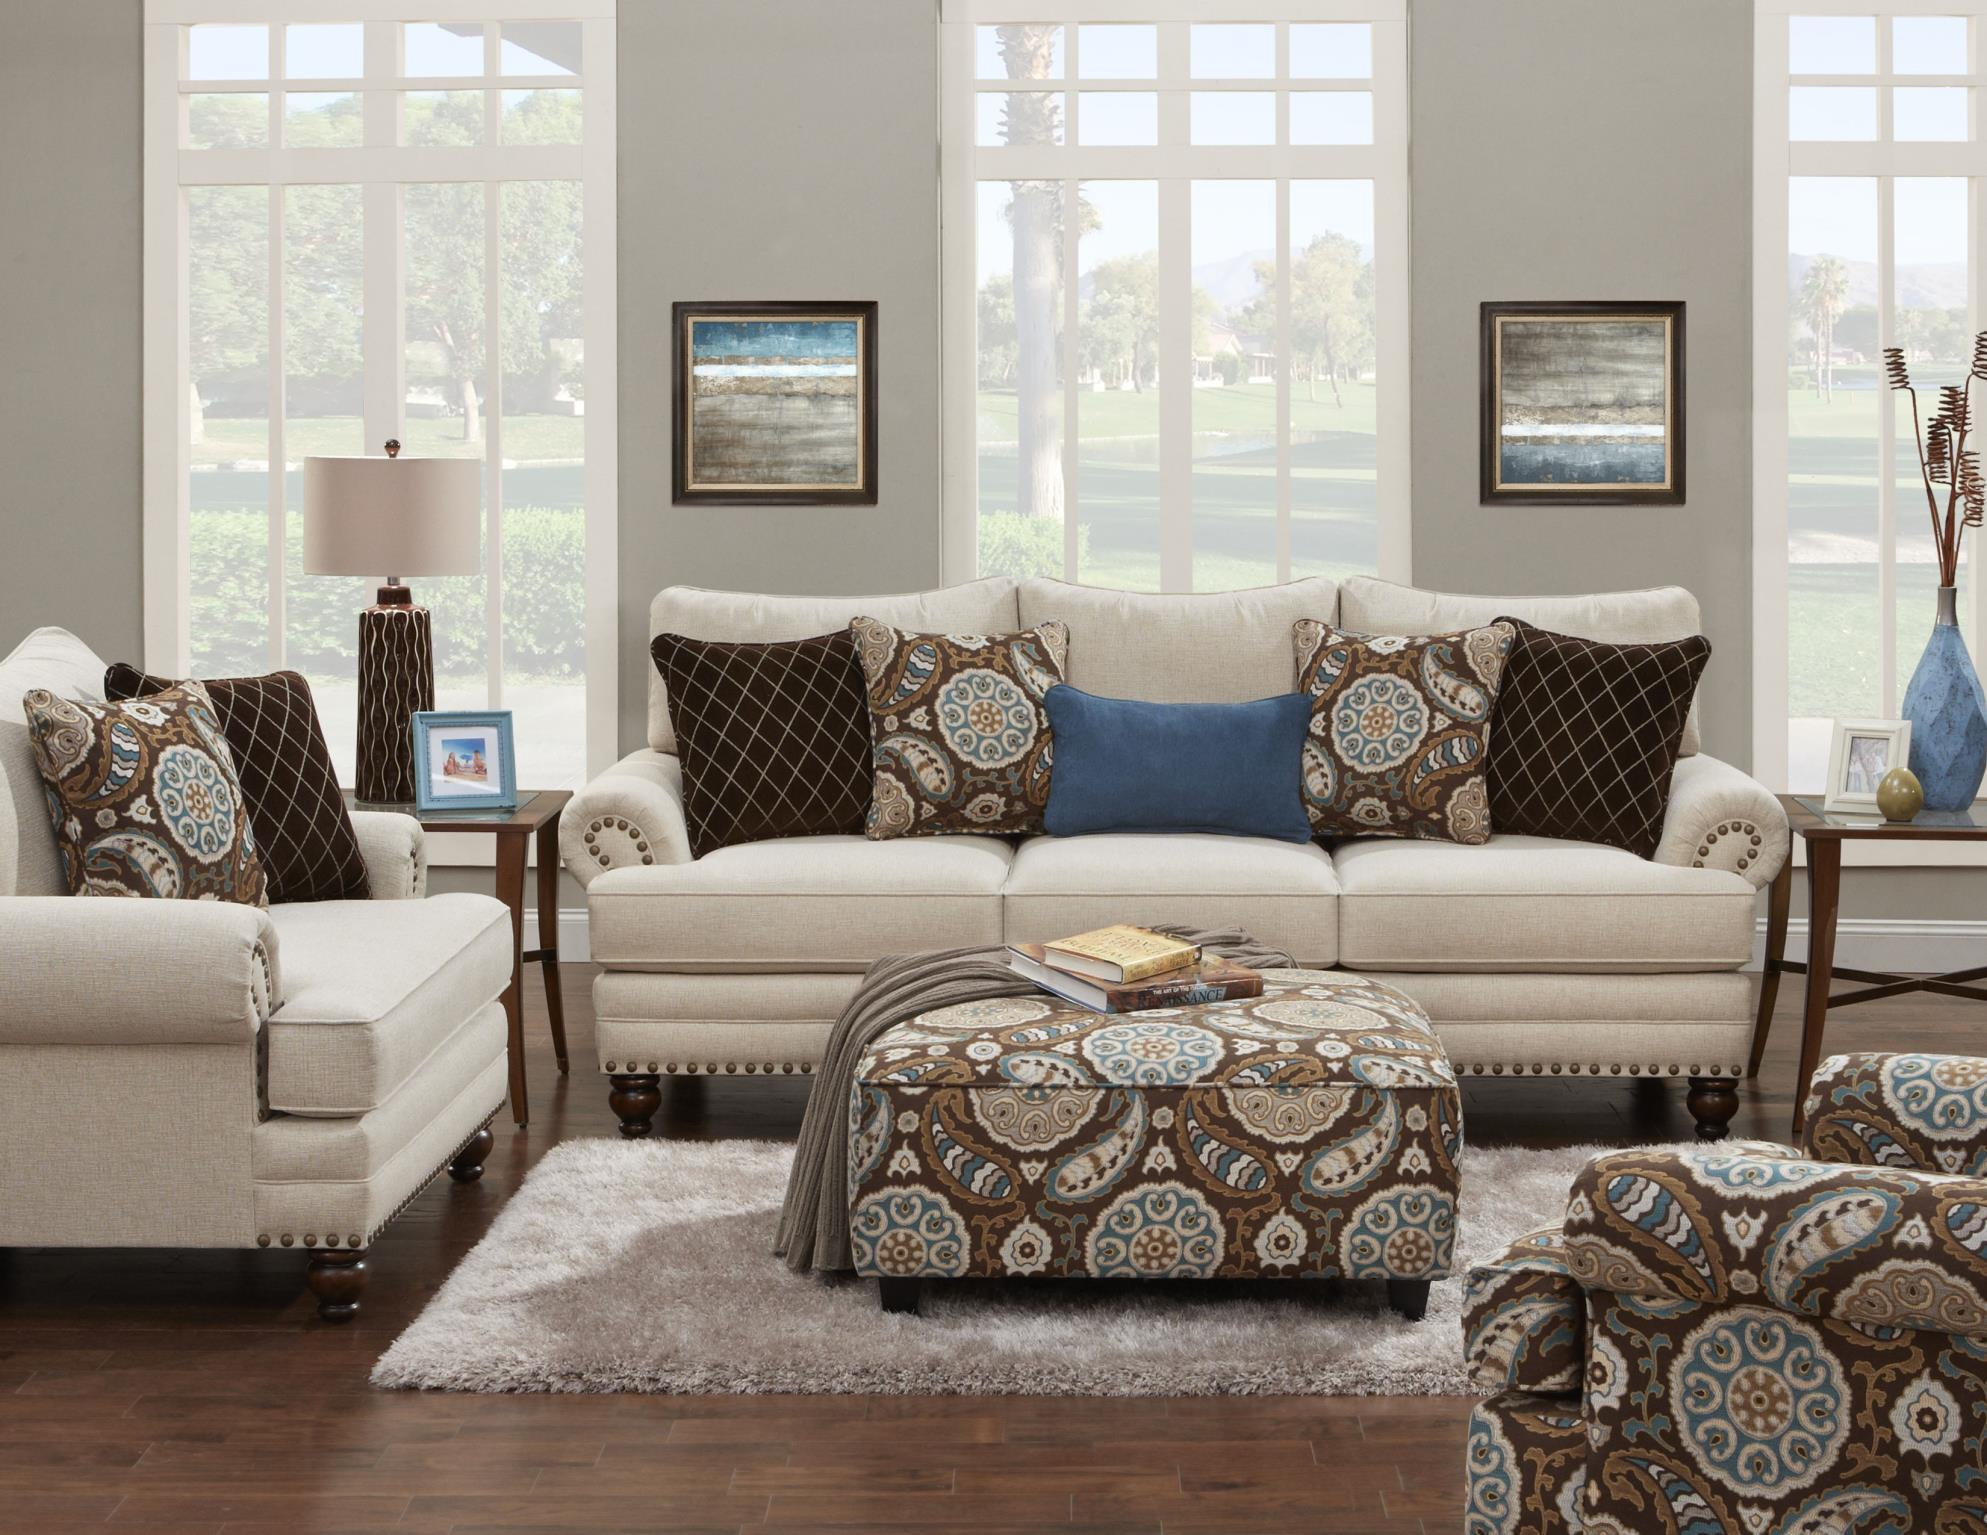 anna slipcover chair collection farmhouse table and chairs for sale fusion furniture 2820 stationary living room group royal